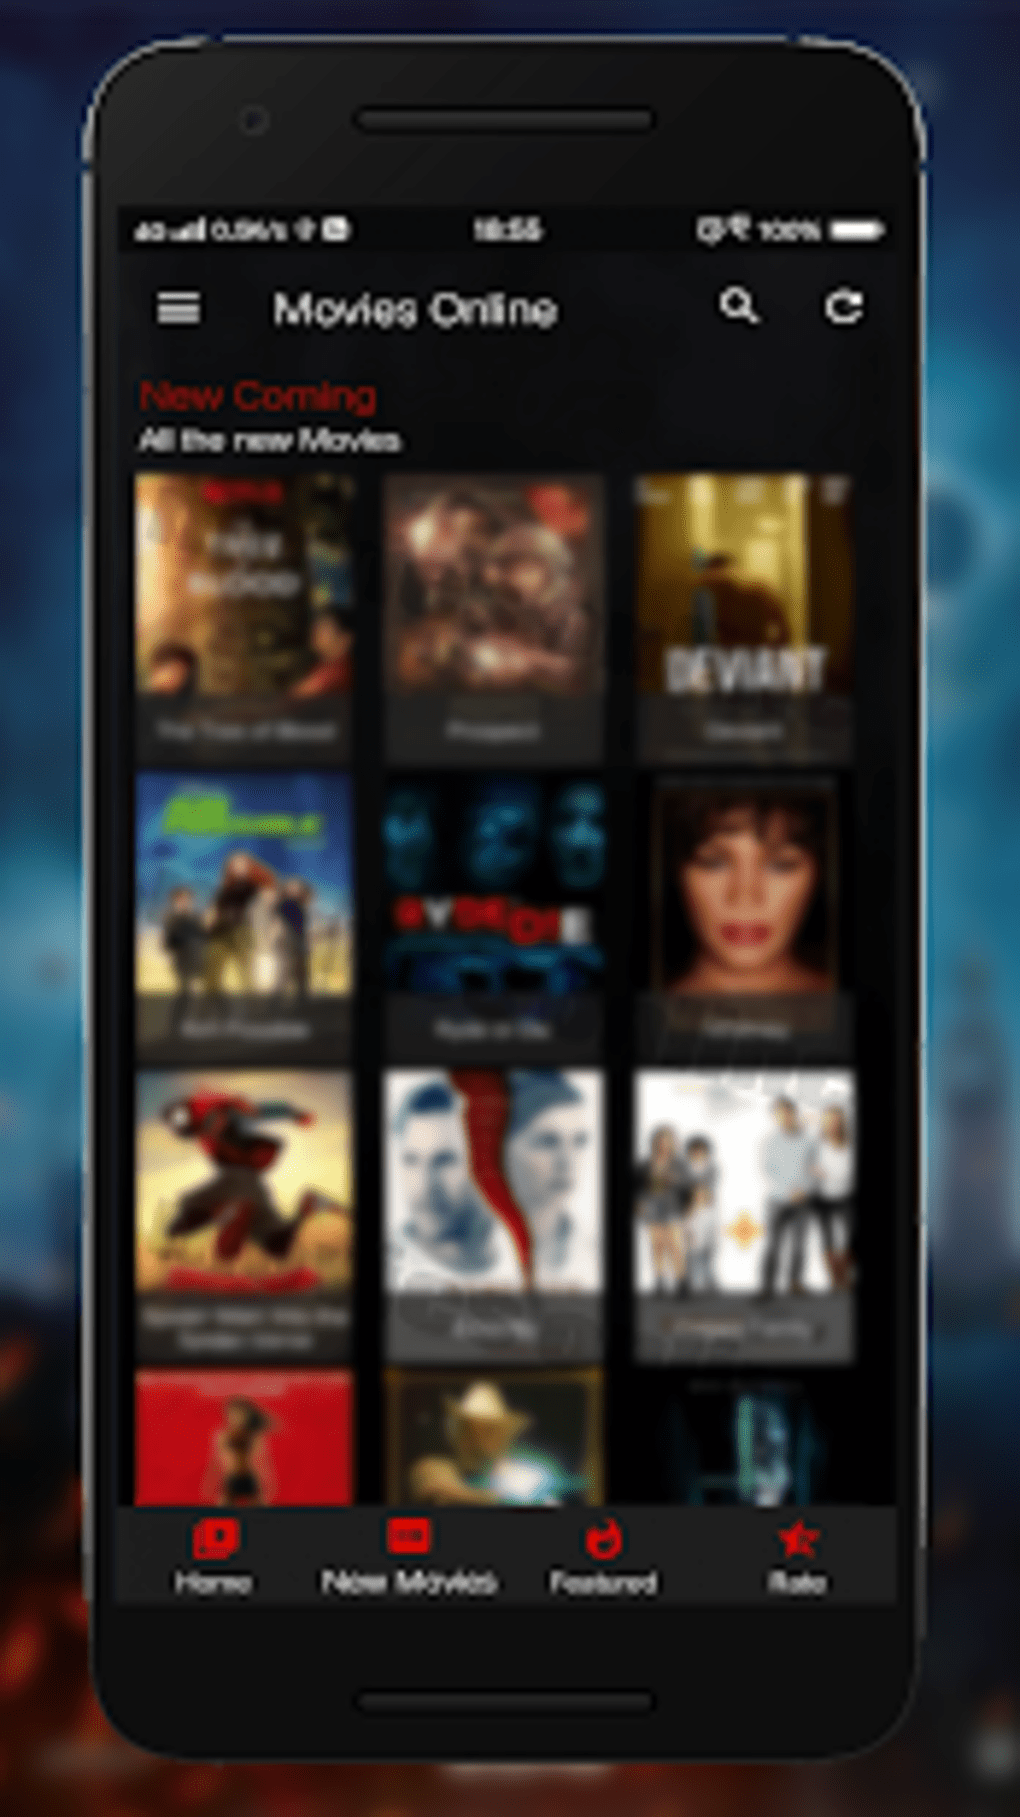 Hd Movie Free - Watch New Movies 2019 For Android - Download-5632